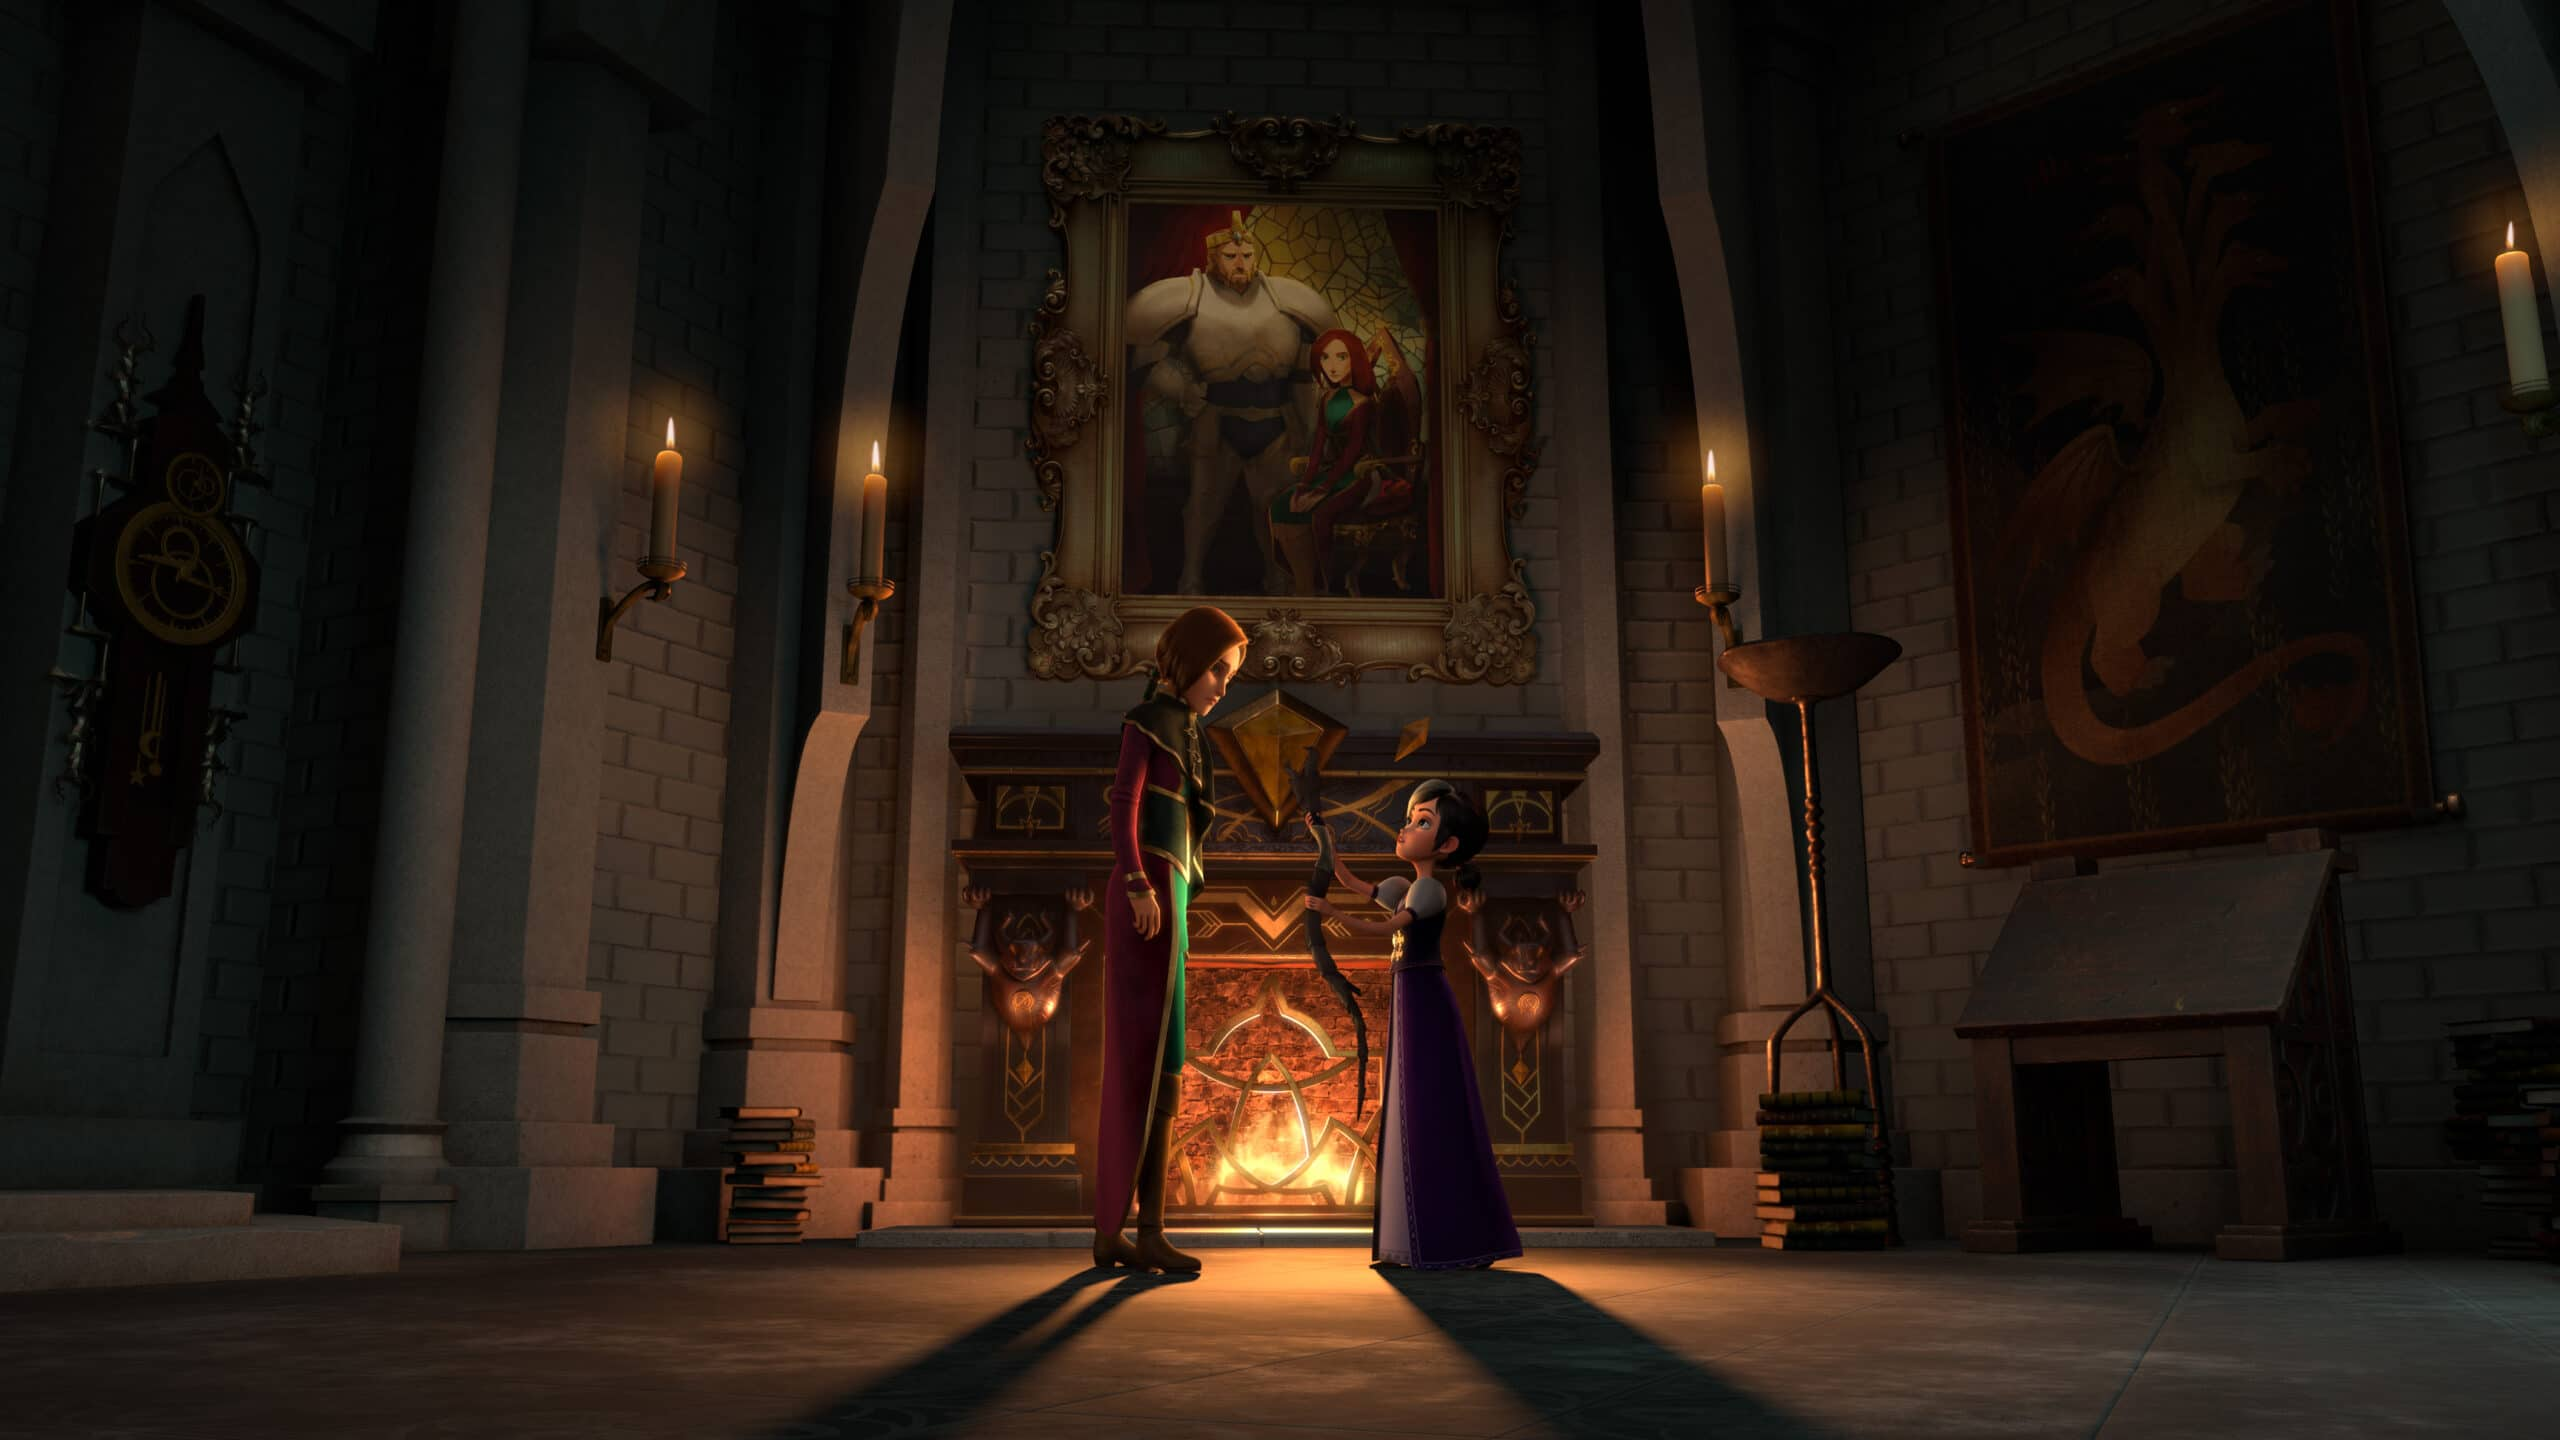 DreamWorks Wizards: Tales of Arcadia Morgana and Claire. Join our favorite supernatural heroes on a time-bending adventure to medieval Camelot. The magic continues the final chapter of the Tales of Arcadia saga, Wizards! Coming to Netflix August 7, 2020.